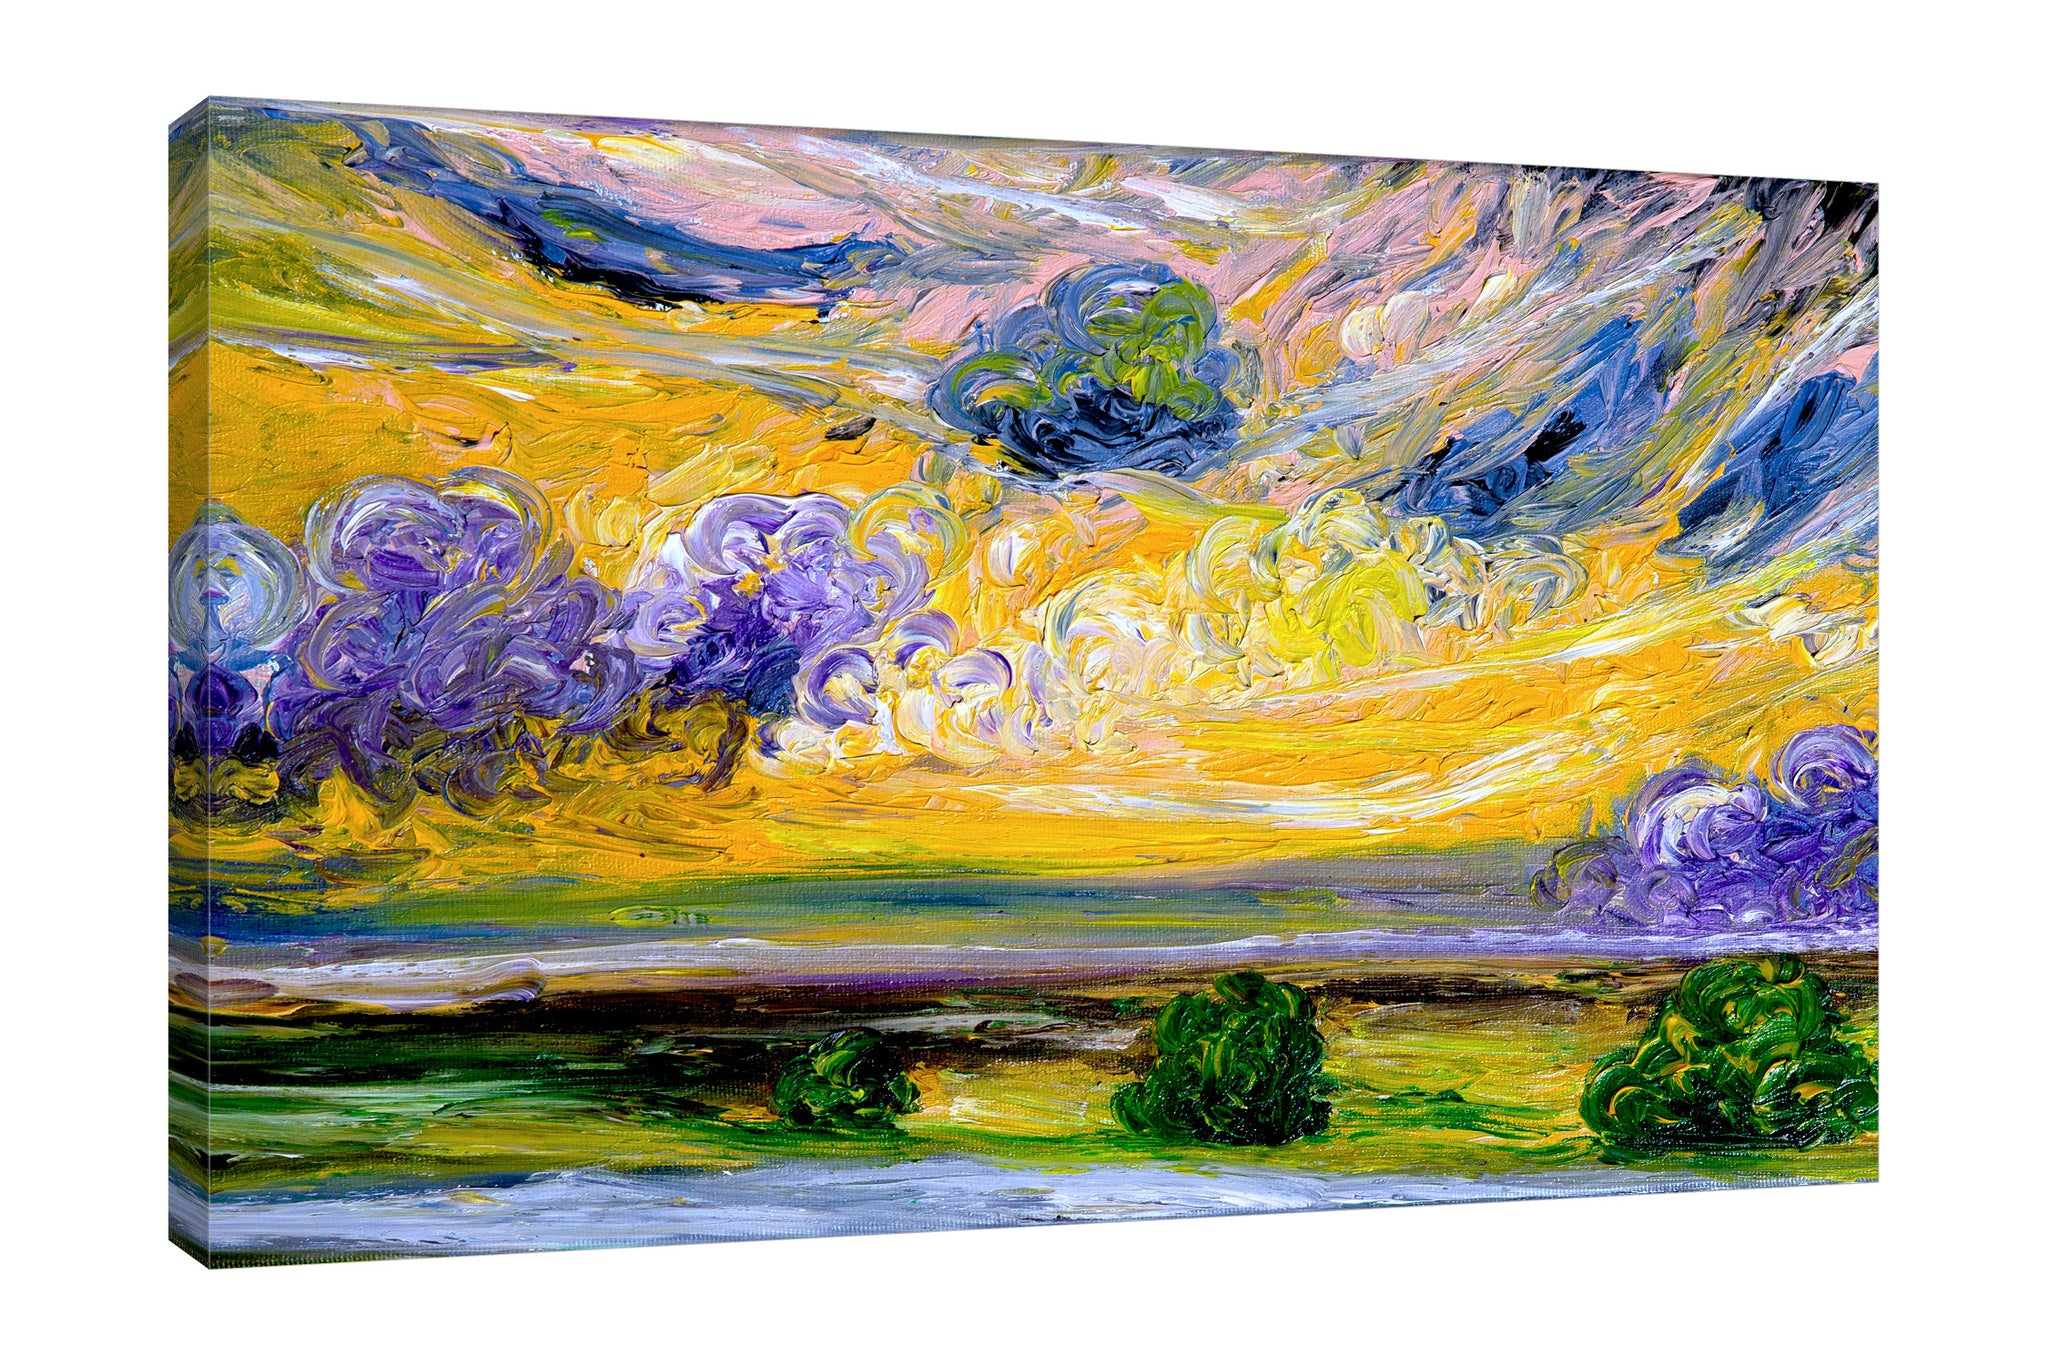 Chiara-Magni,Modern & Contemporary,Landscape & Nature,Finger-paint,landscape,scenery,trees,swirls,clouds,skies,dreamy,brush strokes,violet,yellow,green,blue,